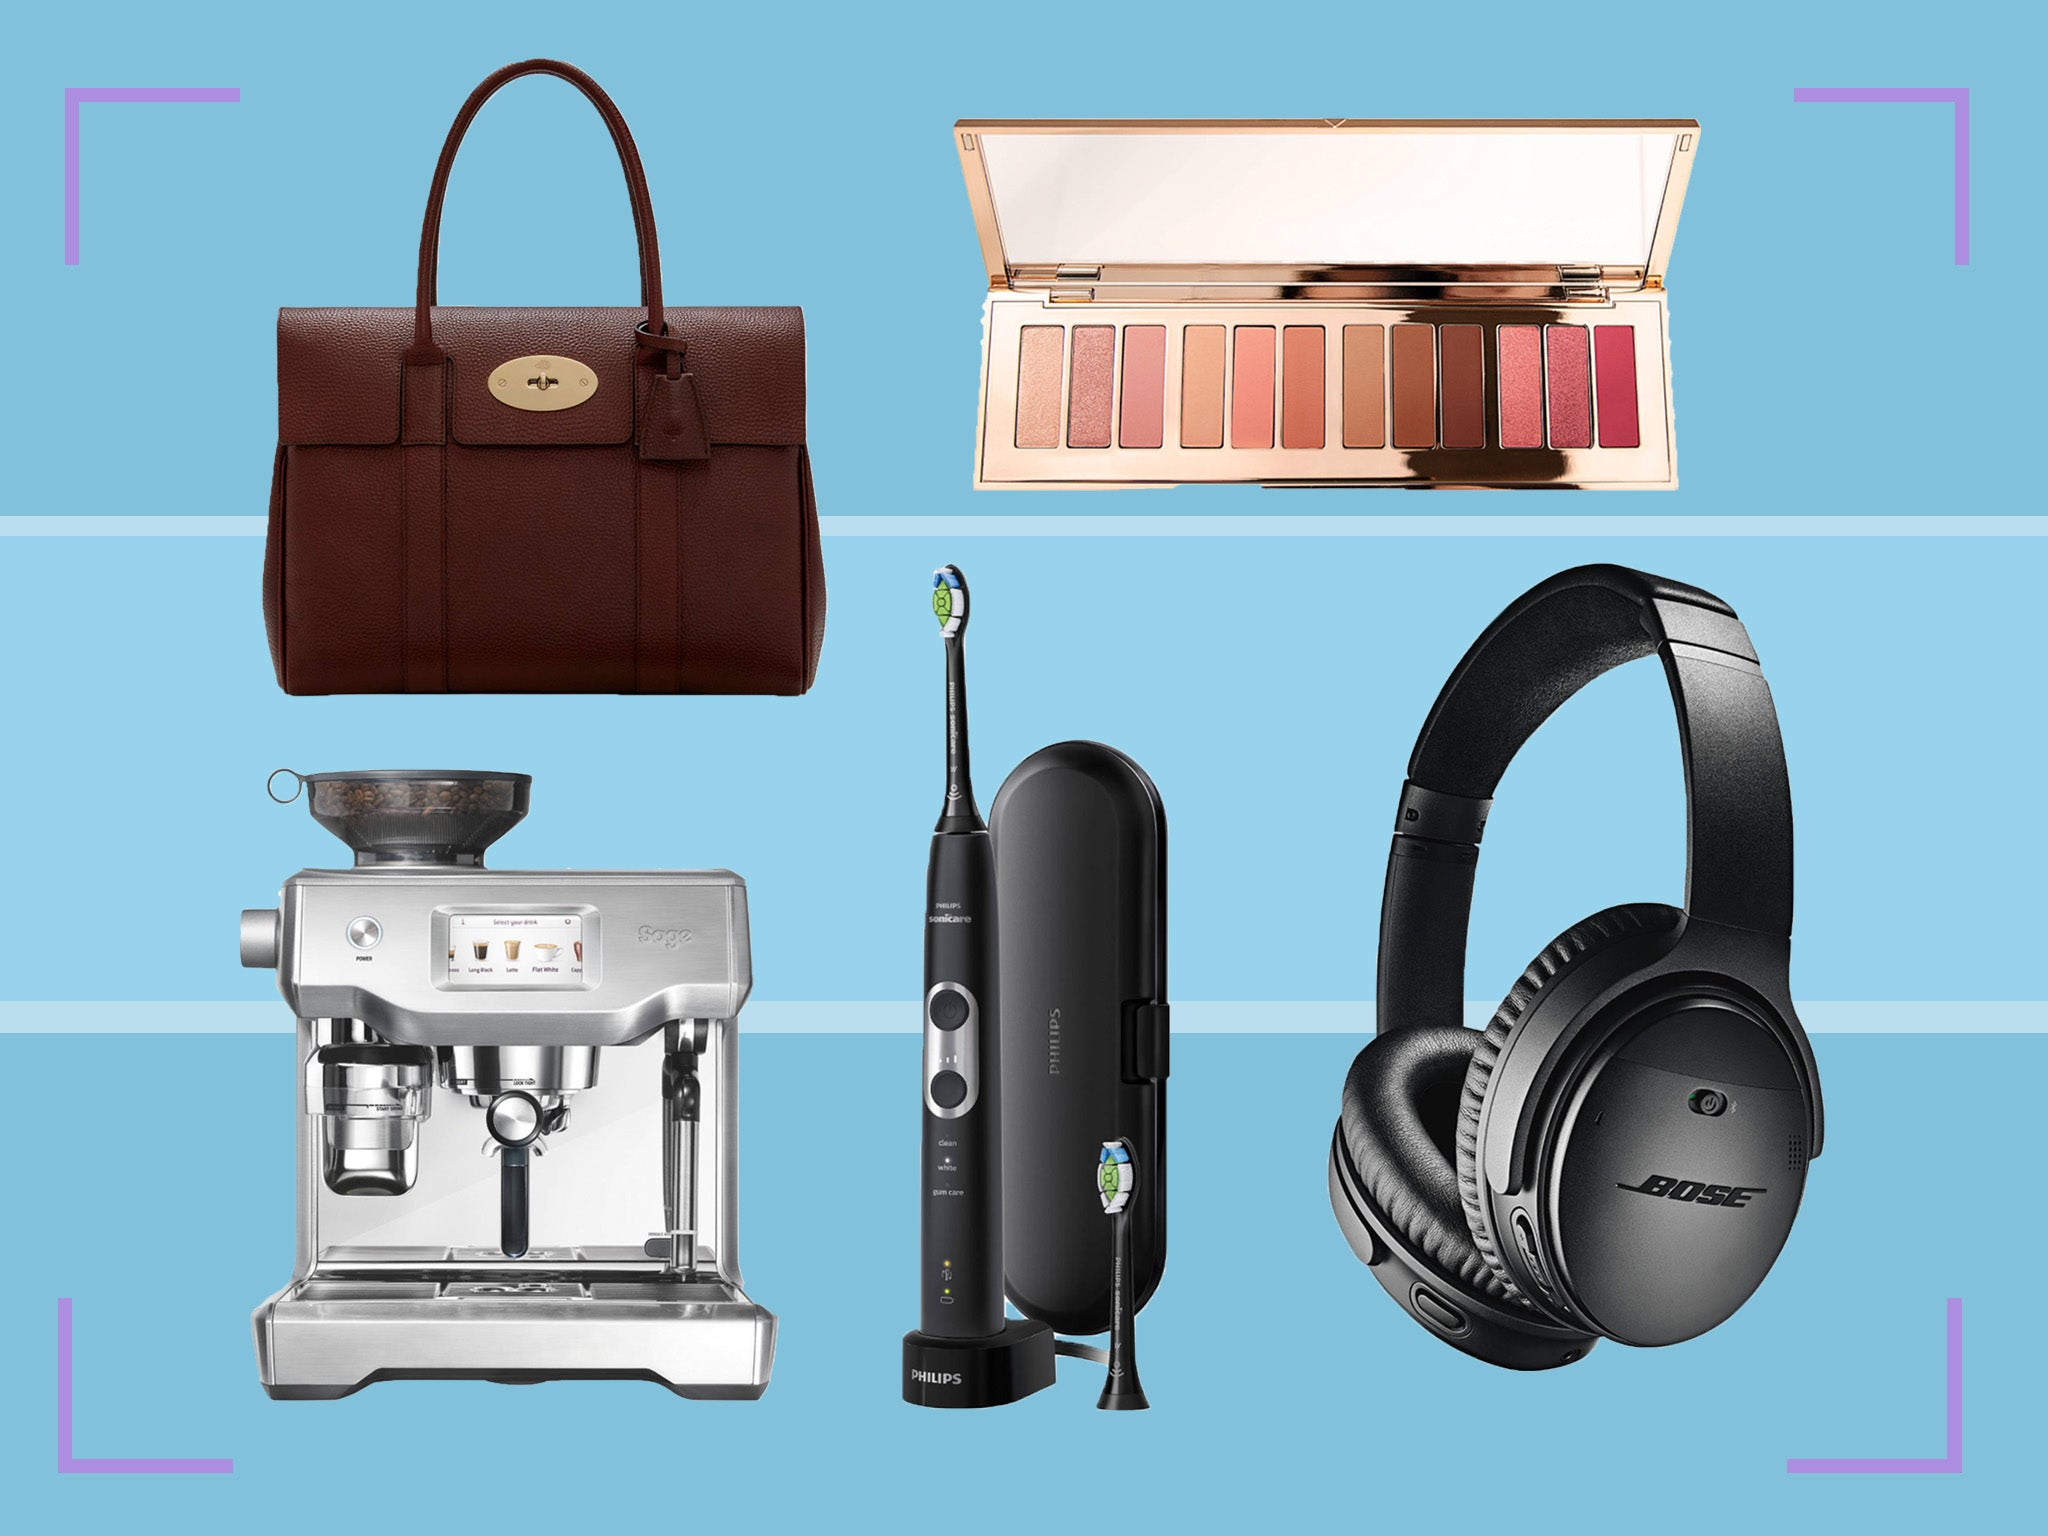 John Lewis Cyber Monday Deals 2020 Best Deals From Apple Samsung Lego And Garmin The Independent